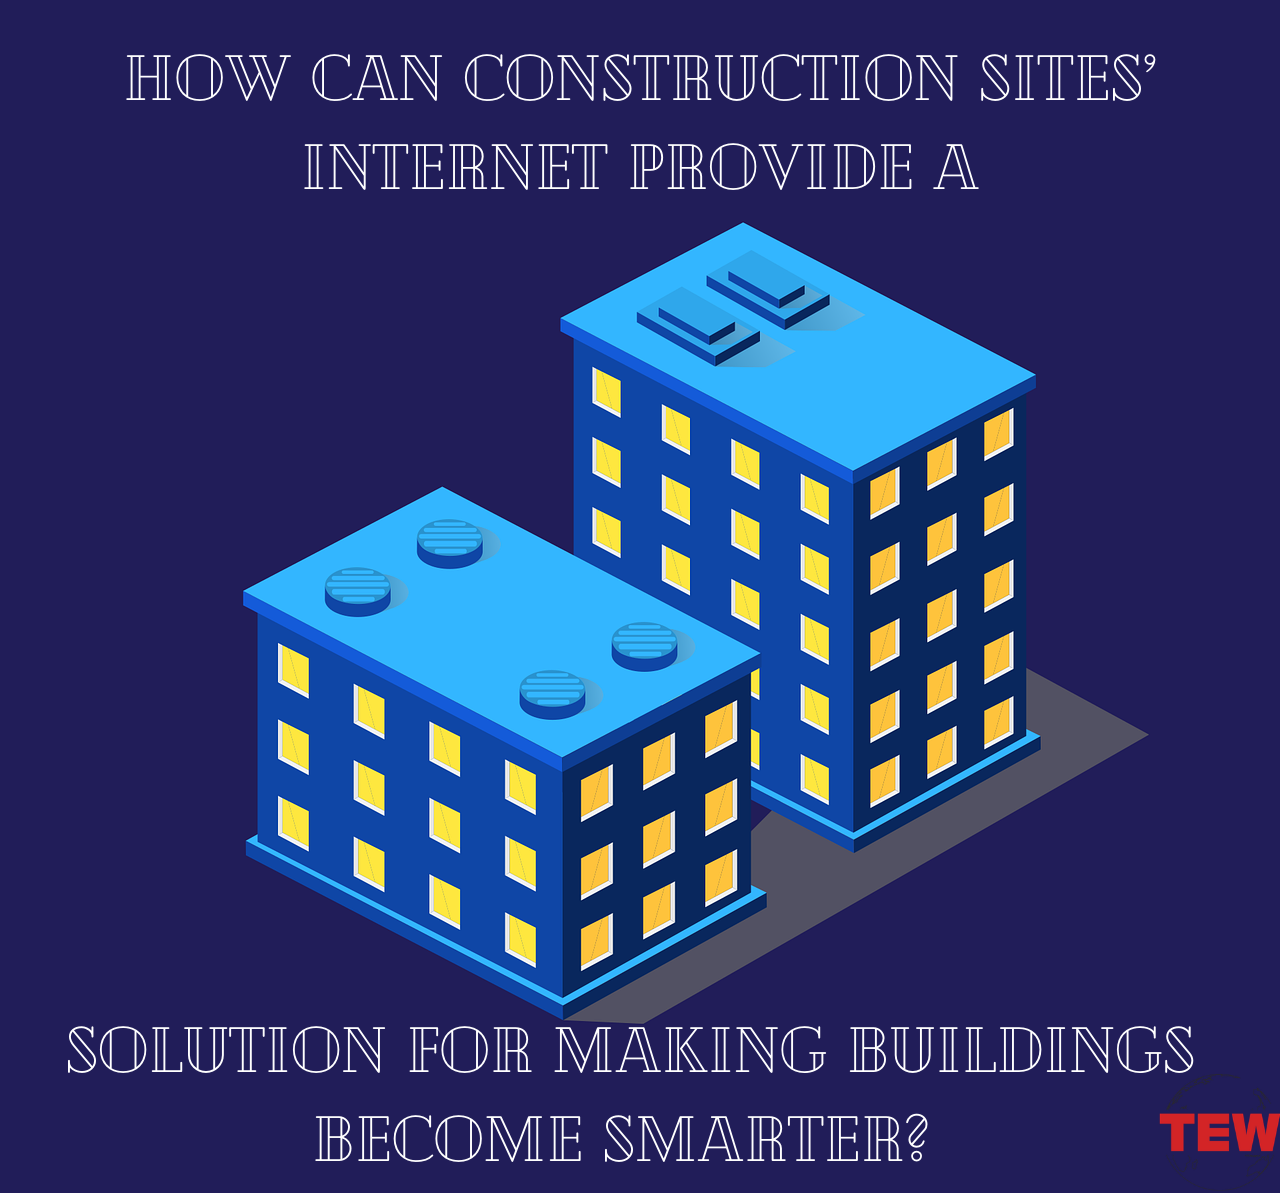 How Can Construction Sites' Internet Provide a Solution For Making Buildings Become Smarter_